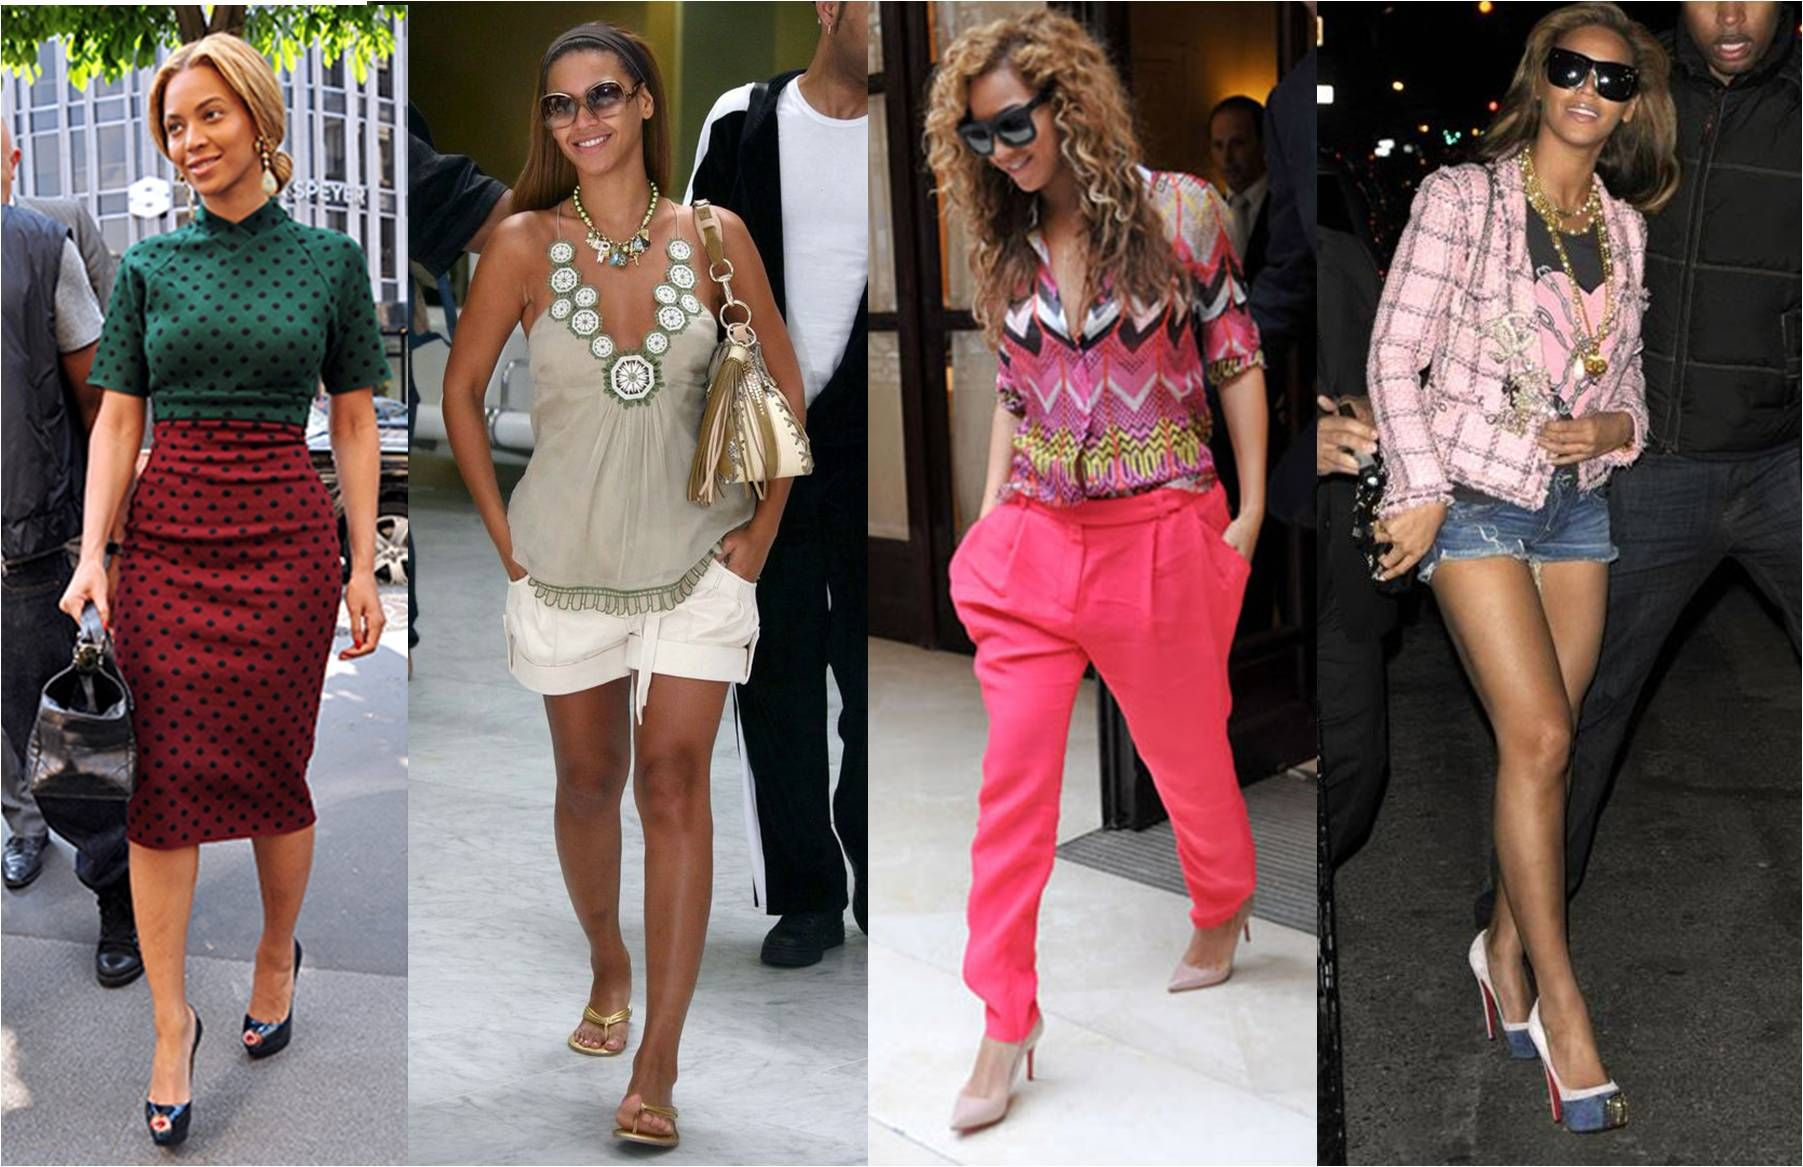 beyonce casual wardrobe - Google Search | THE LOOKBOOK ...